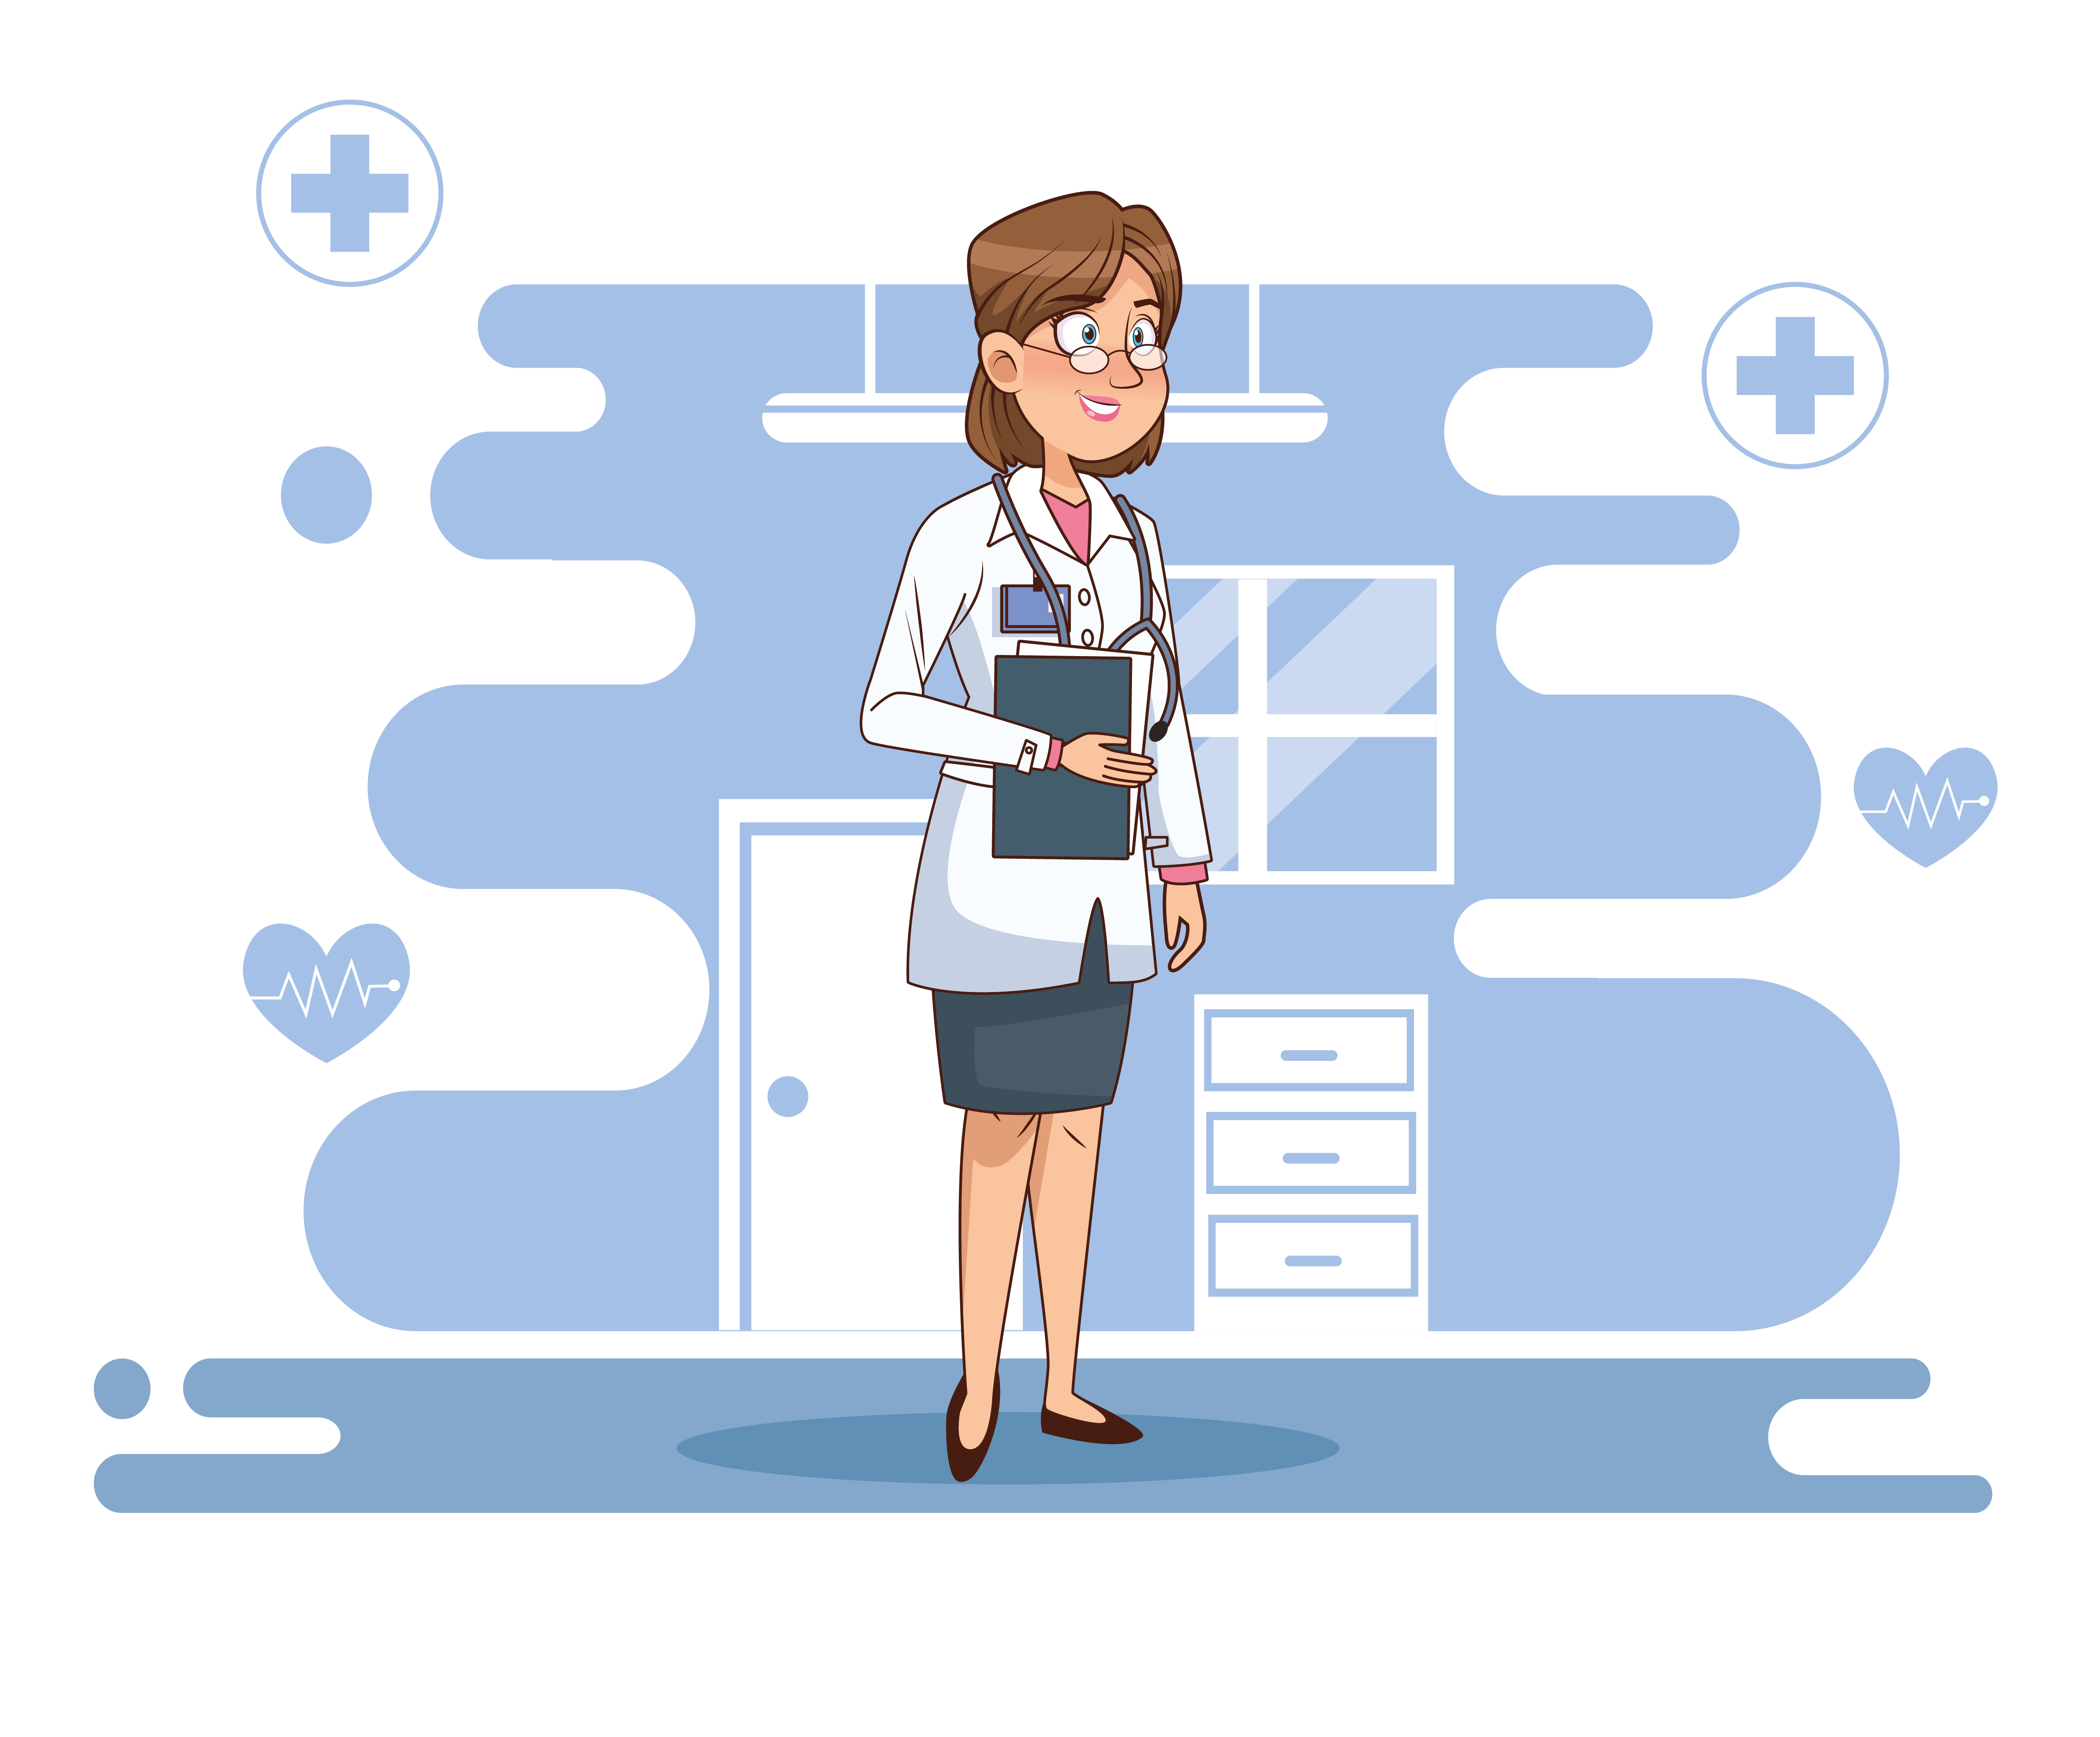 Female professional doctor character vector